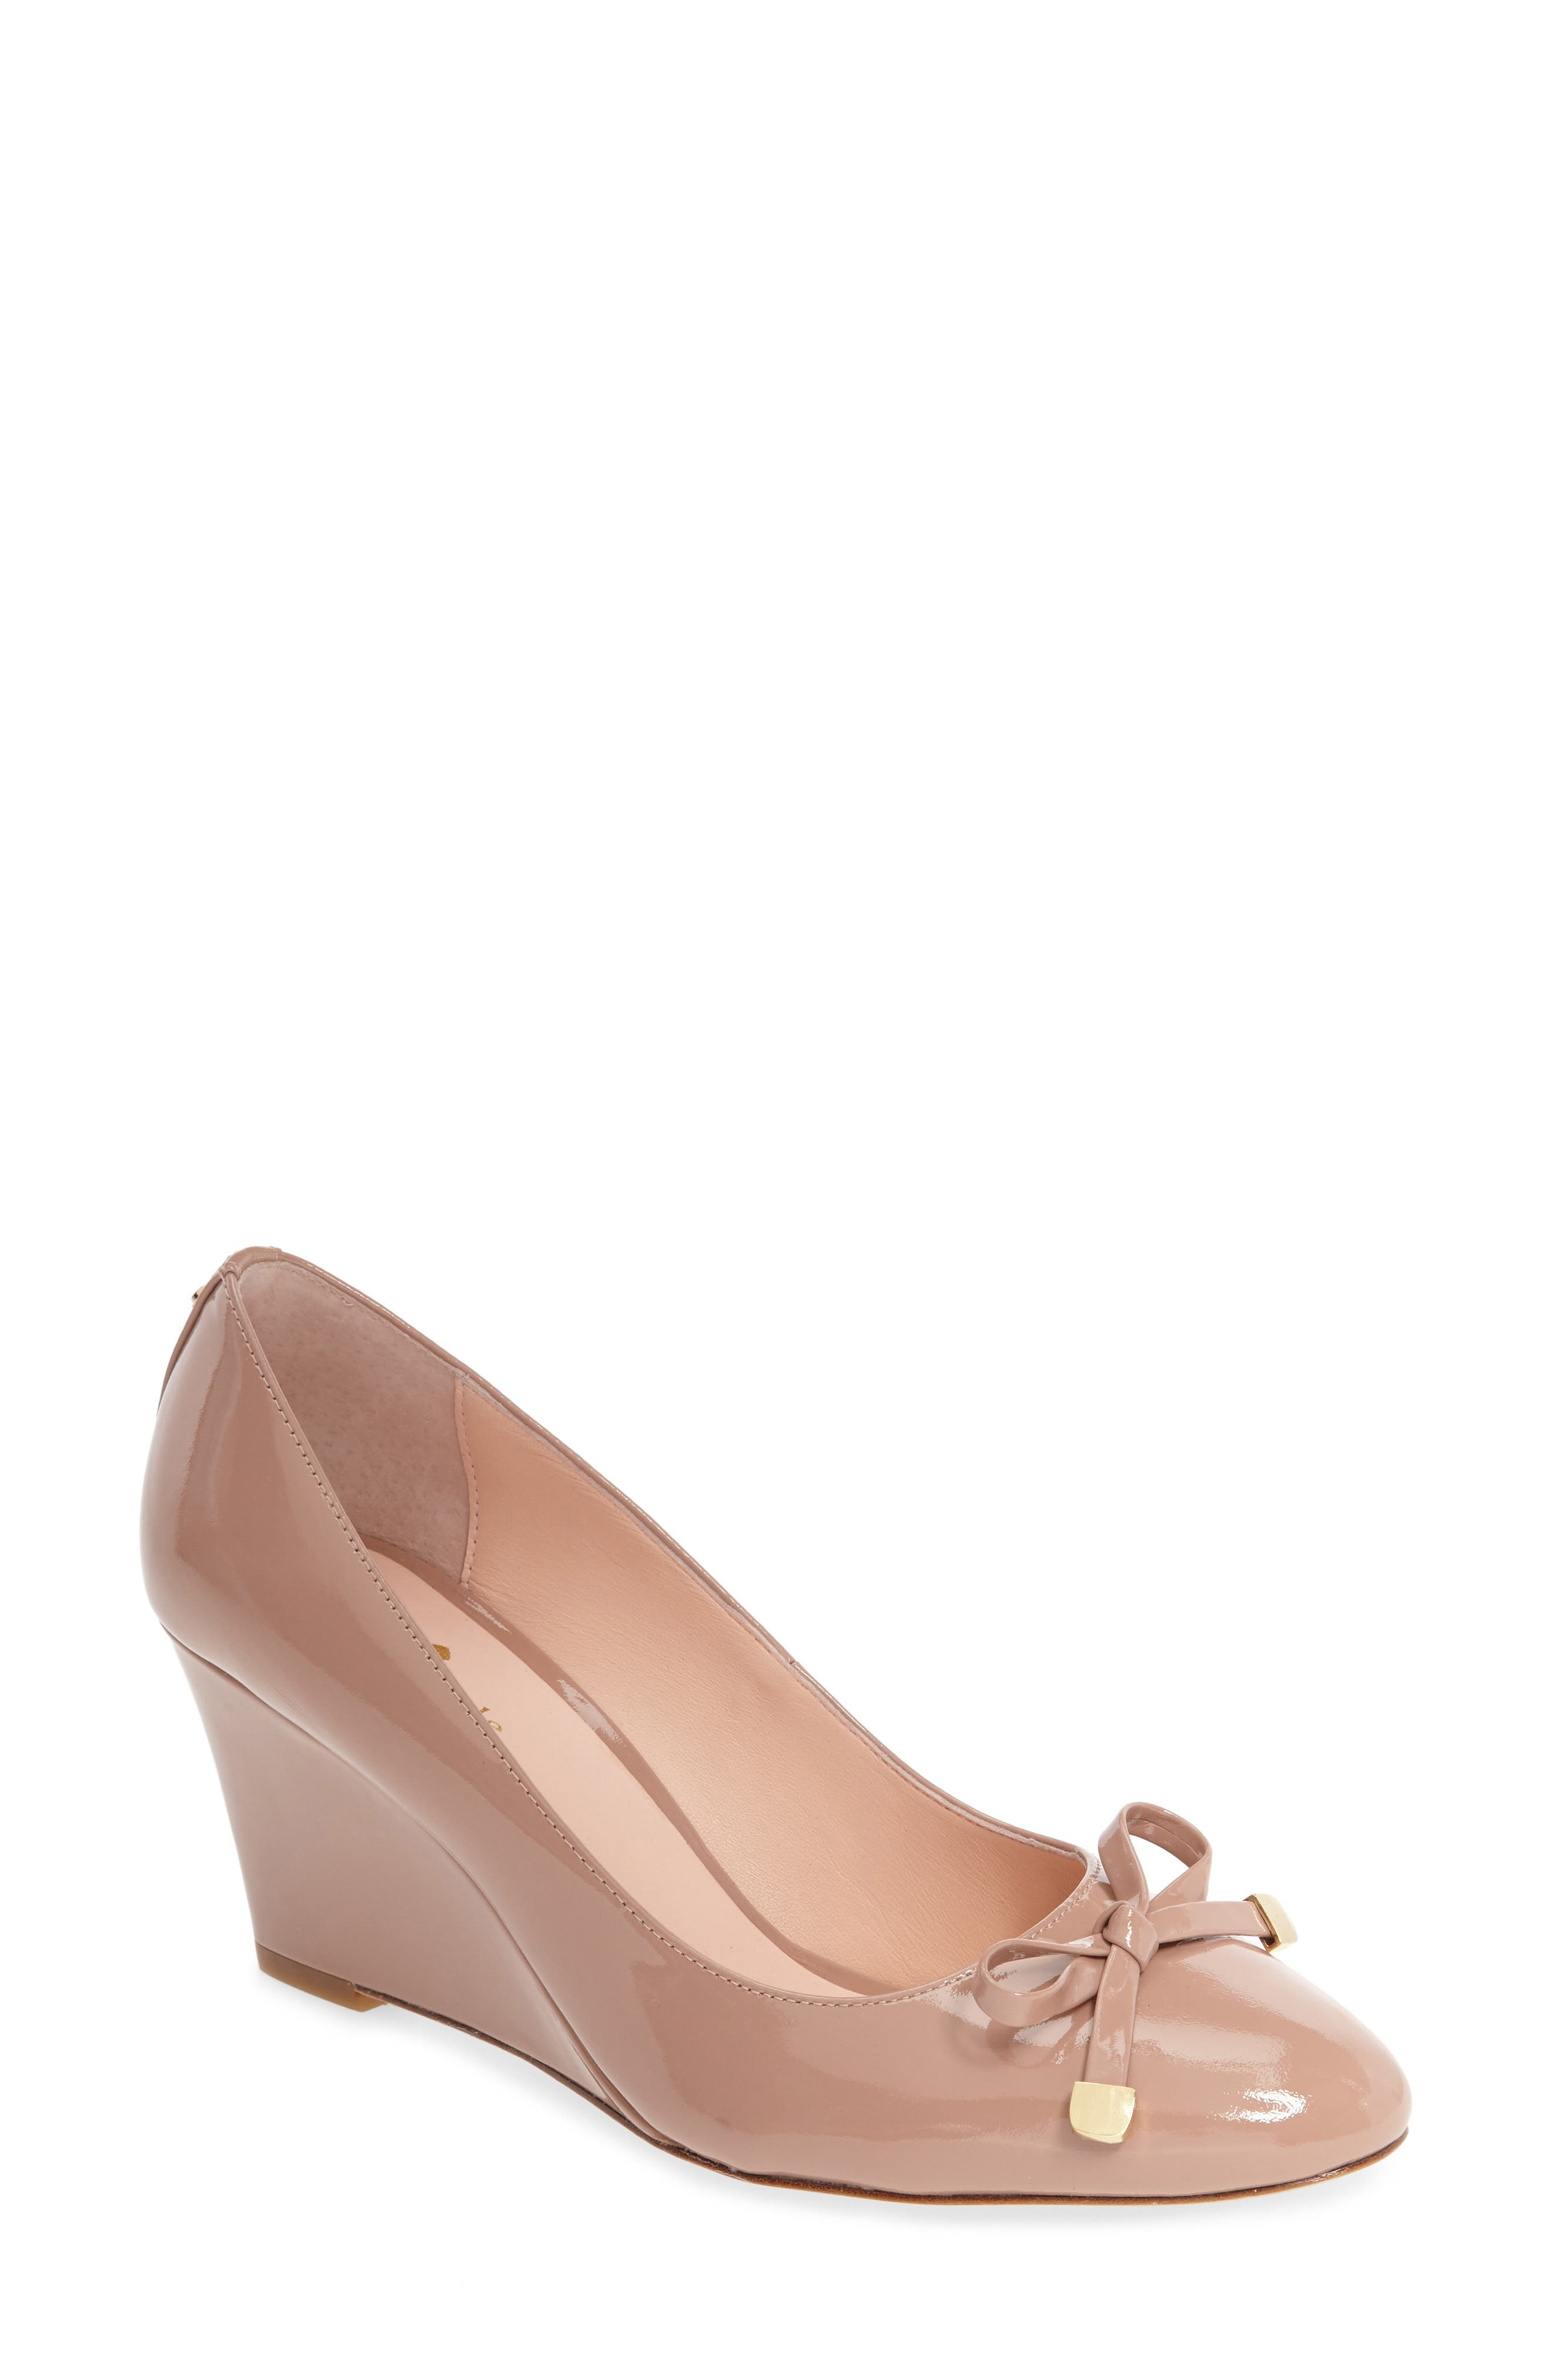 kate spade new york wrenn bow wedge (Women)